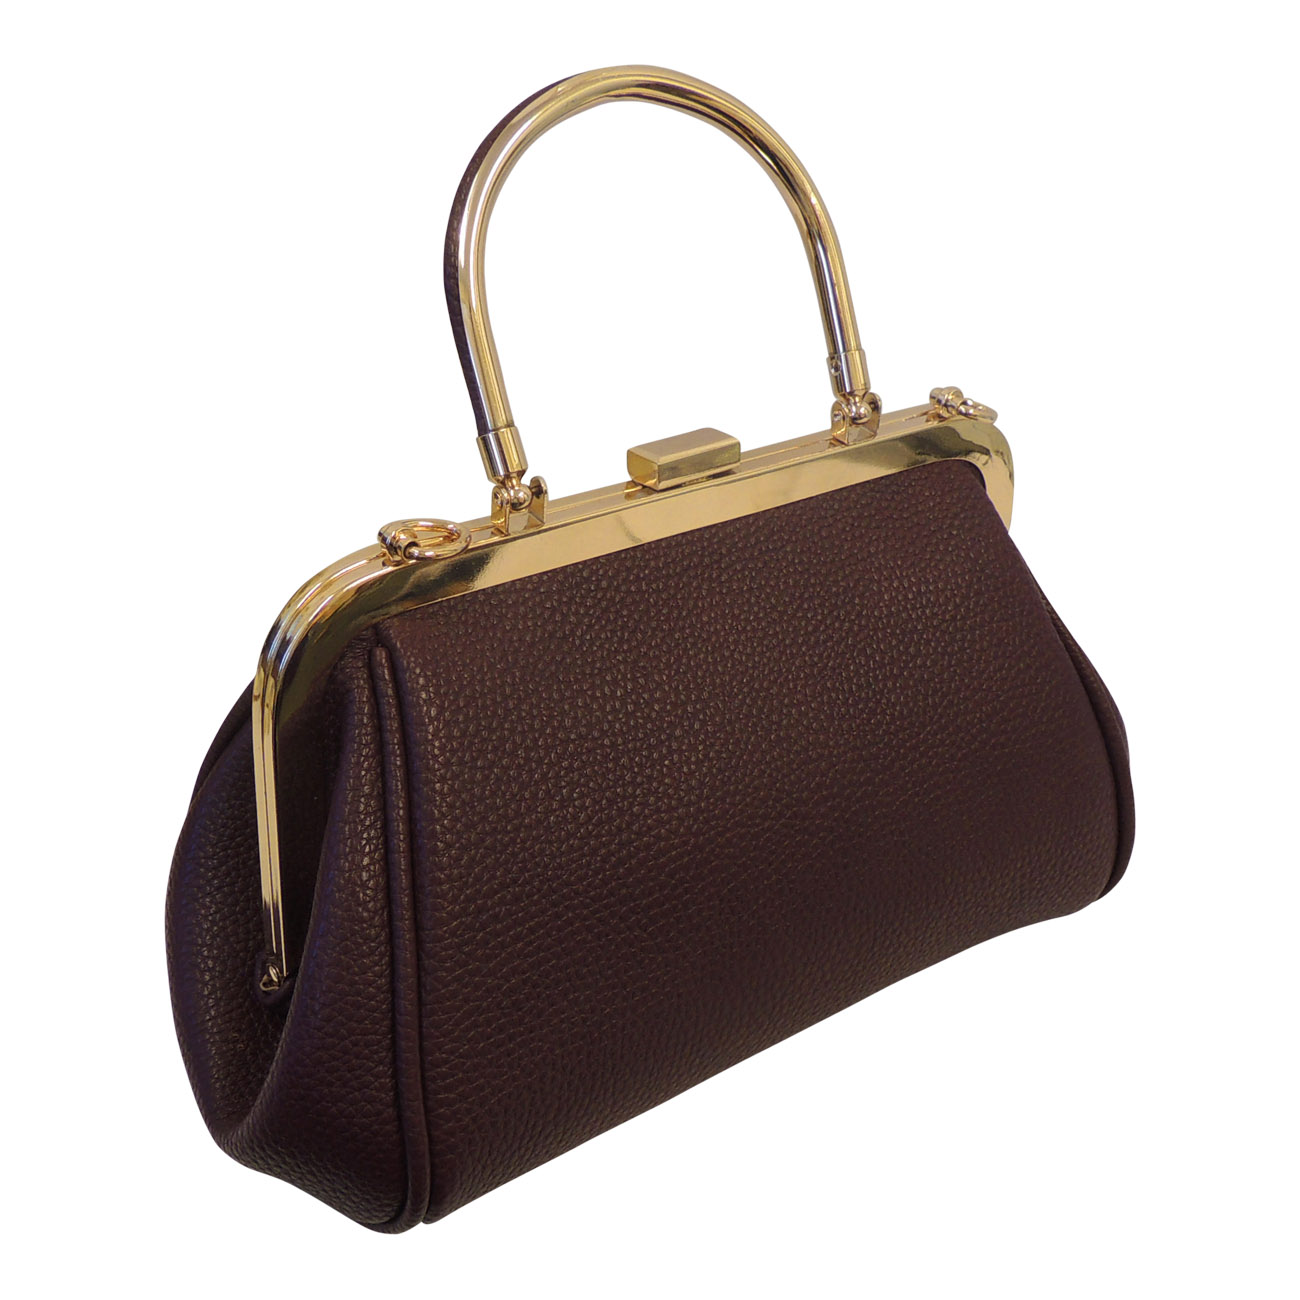 Vintage & Retro Handbags, Purses, Wallets, Bags 1940s 1950s Classic Framed Kelly Handbag Box Bag $29.95 AT vintagedancer.com